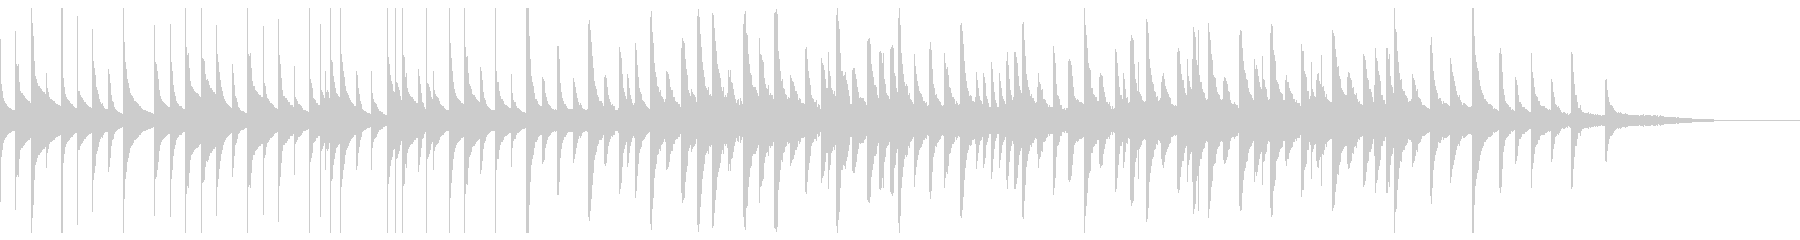 Bad Music Box Reminiscence Game Over's unreproduced waveform